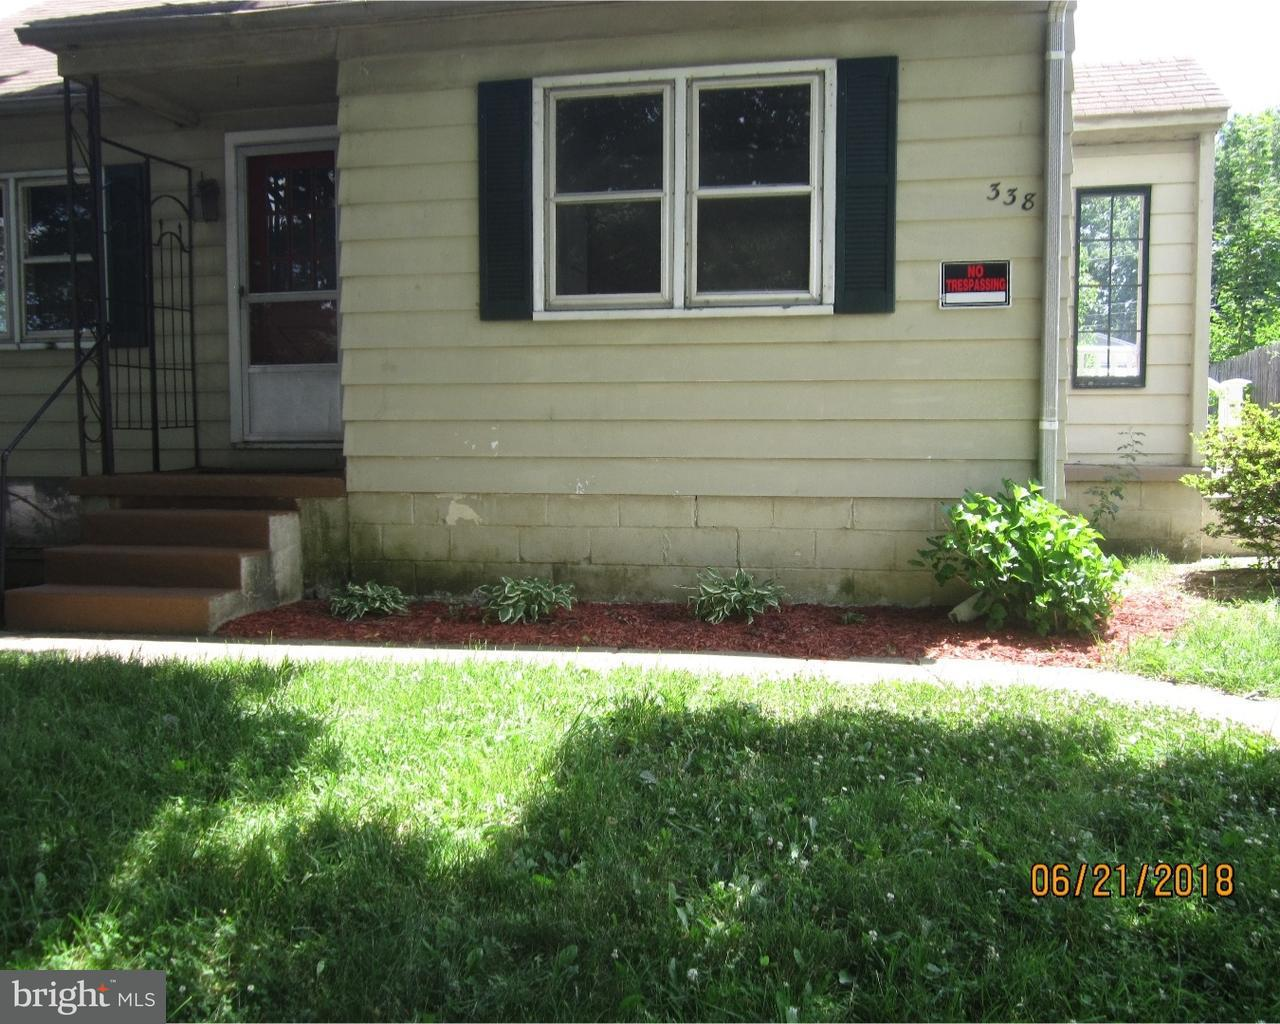 338 MADISON ST, COATESVILLE - Listed at $107,000, COATESVILLE